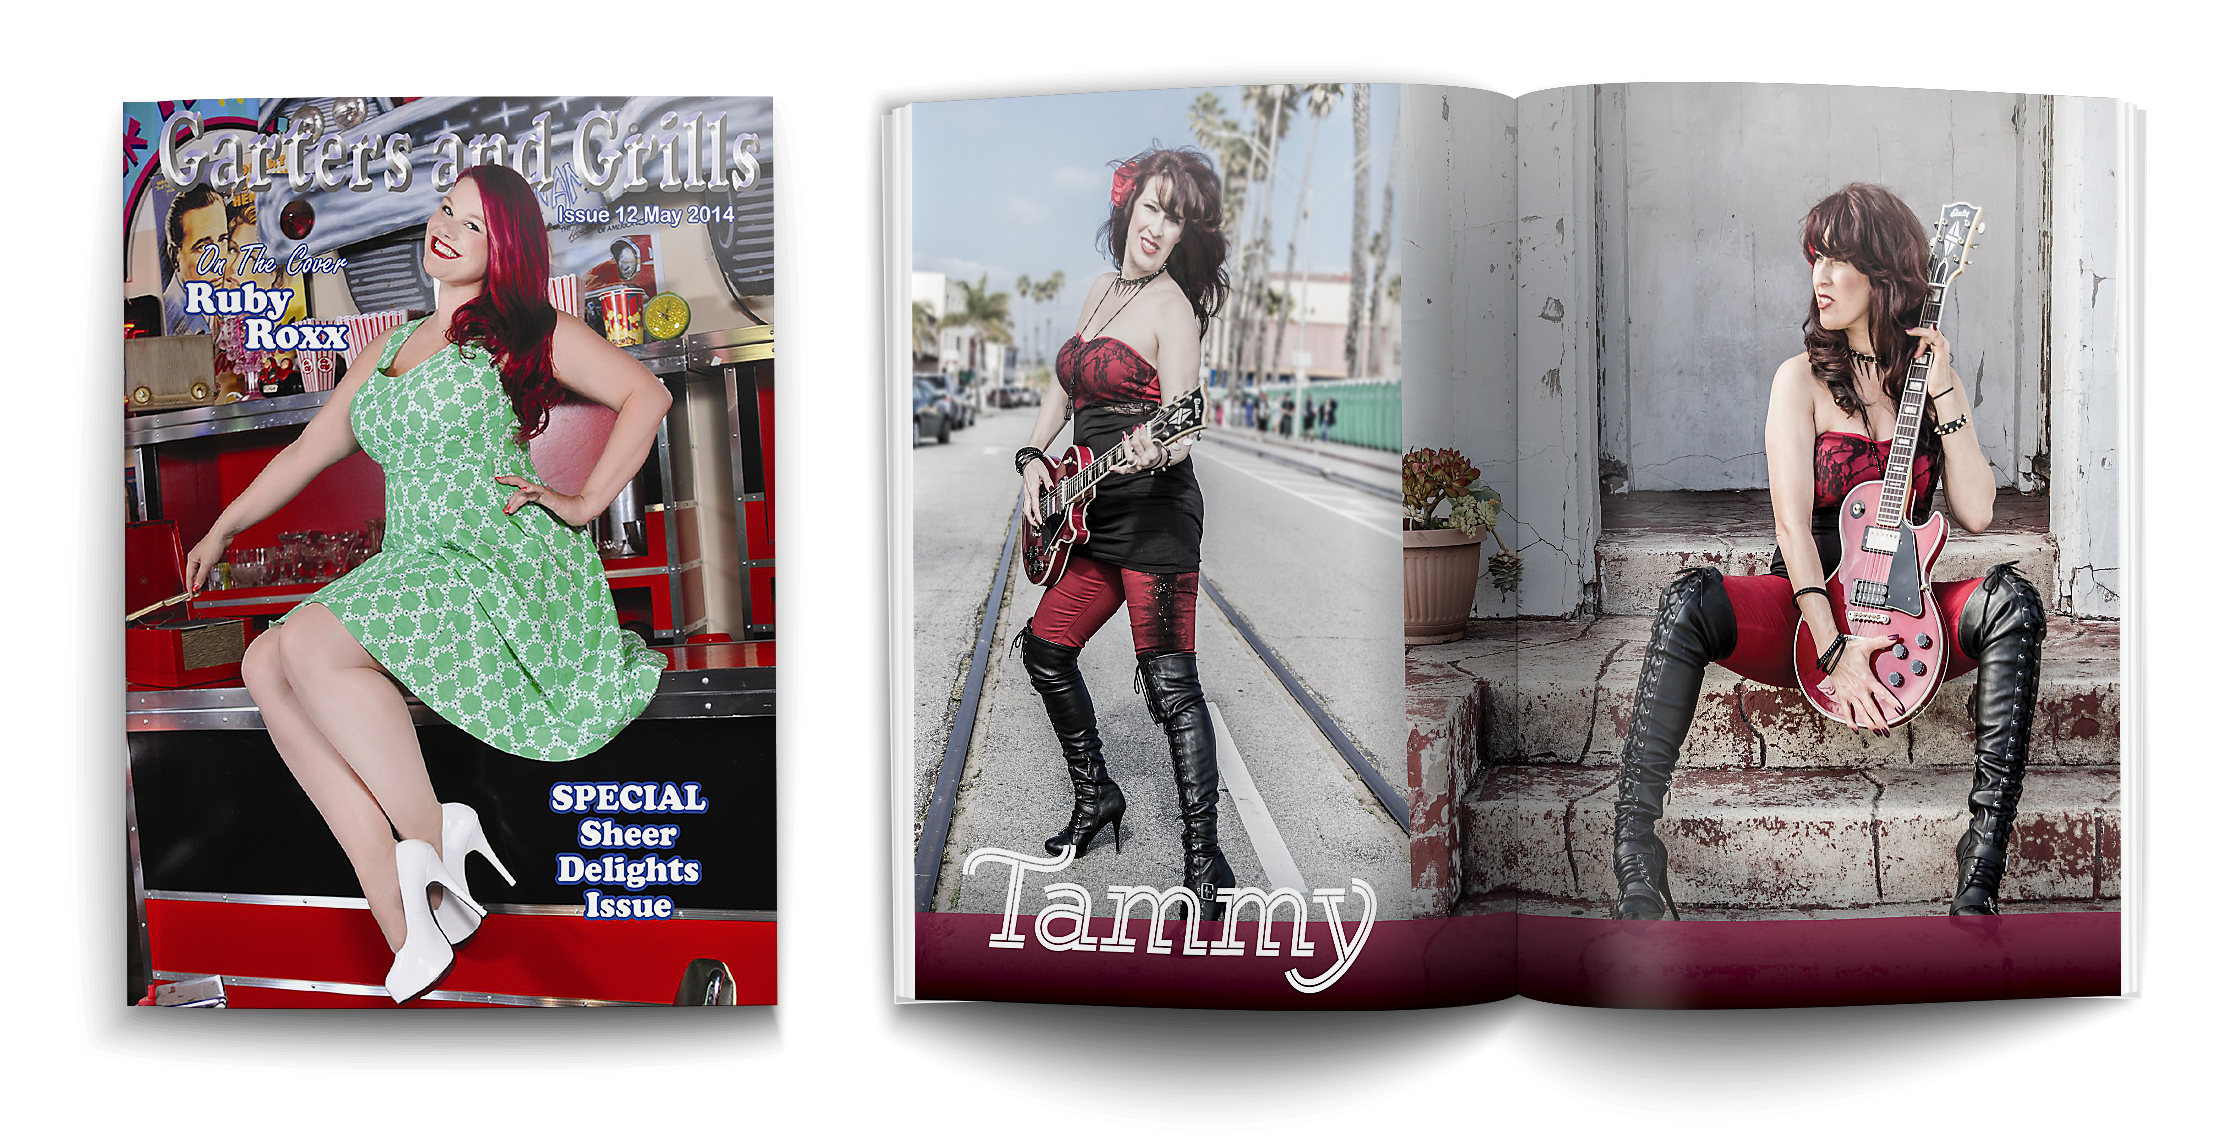 Garters_and_Grills_Magazine_GandG_May_Issue_Render2.png